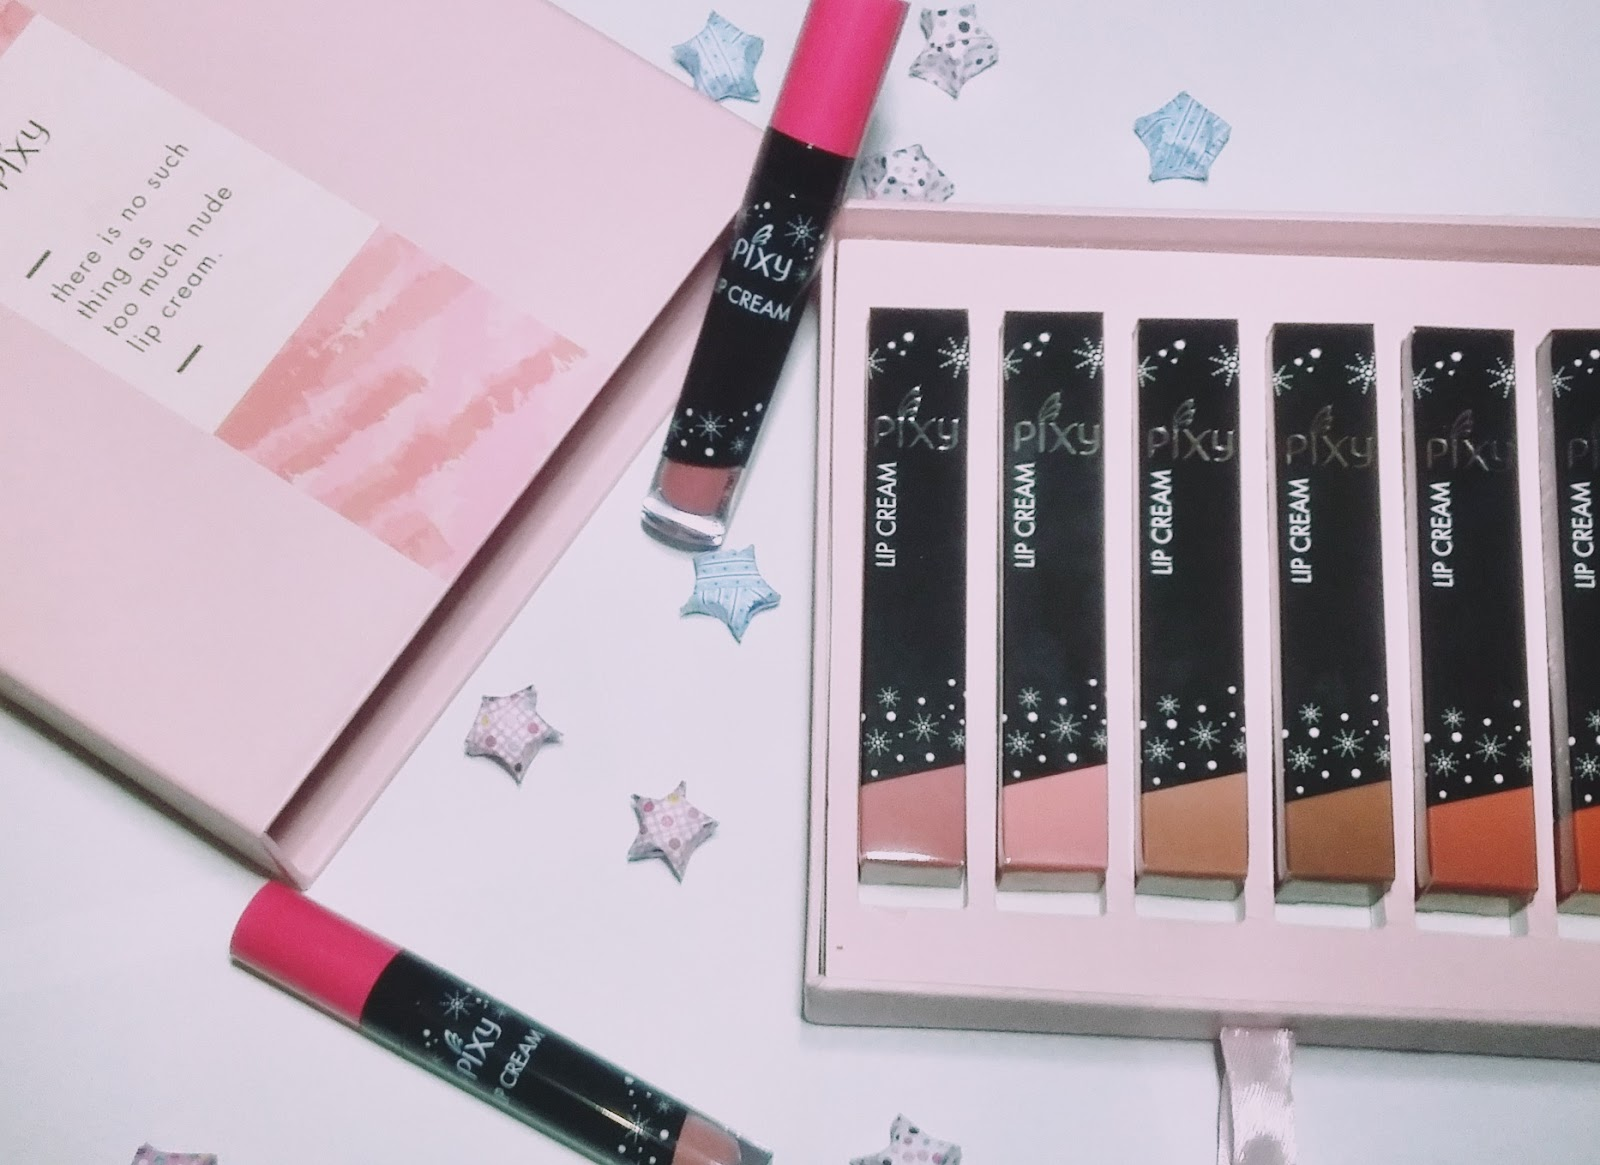 [REVIEW] NEW 6 Shades! Pixy Lip Cream Nude Series